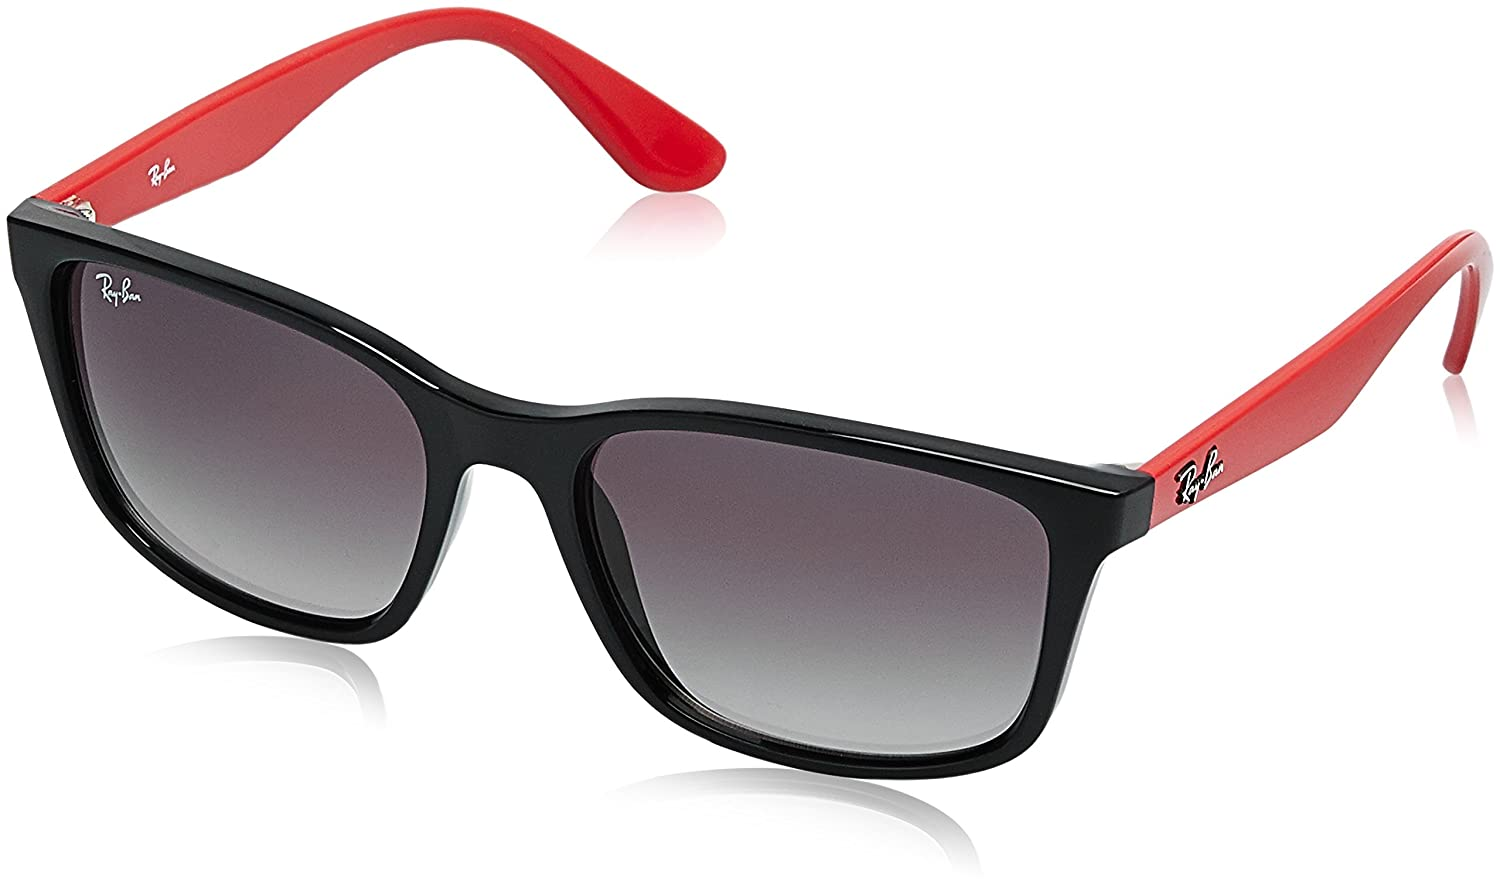 f085b53c98 Click Below Images to Enlarge. Style  Wayfarer  Color  Black-Red  Lens  Grey  Gradient